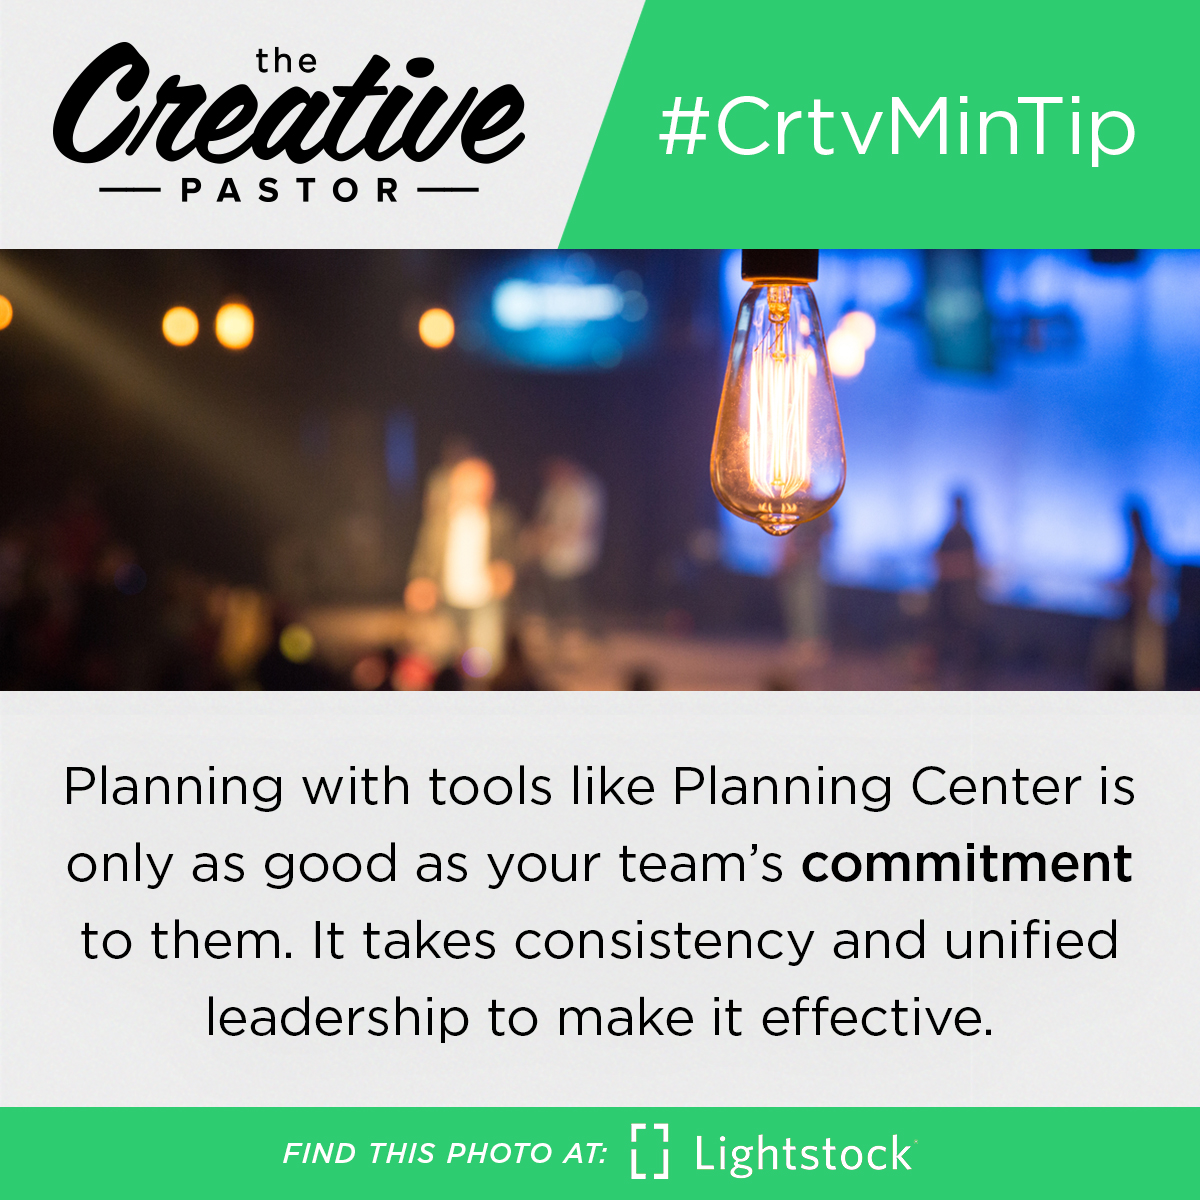 #CrtvMinTip: Planning services with tools like Planning Center is only as good as your team's commitment to them. It takes consistency and unified leadership to make it effective.